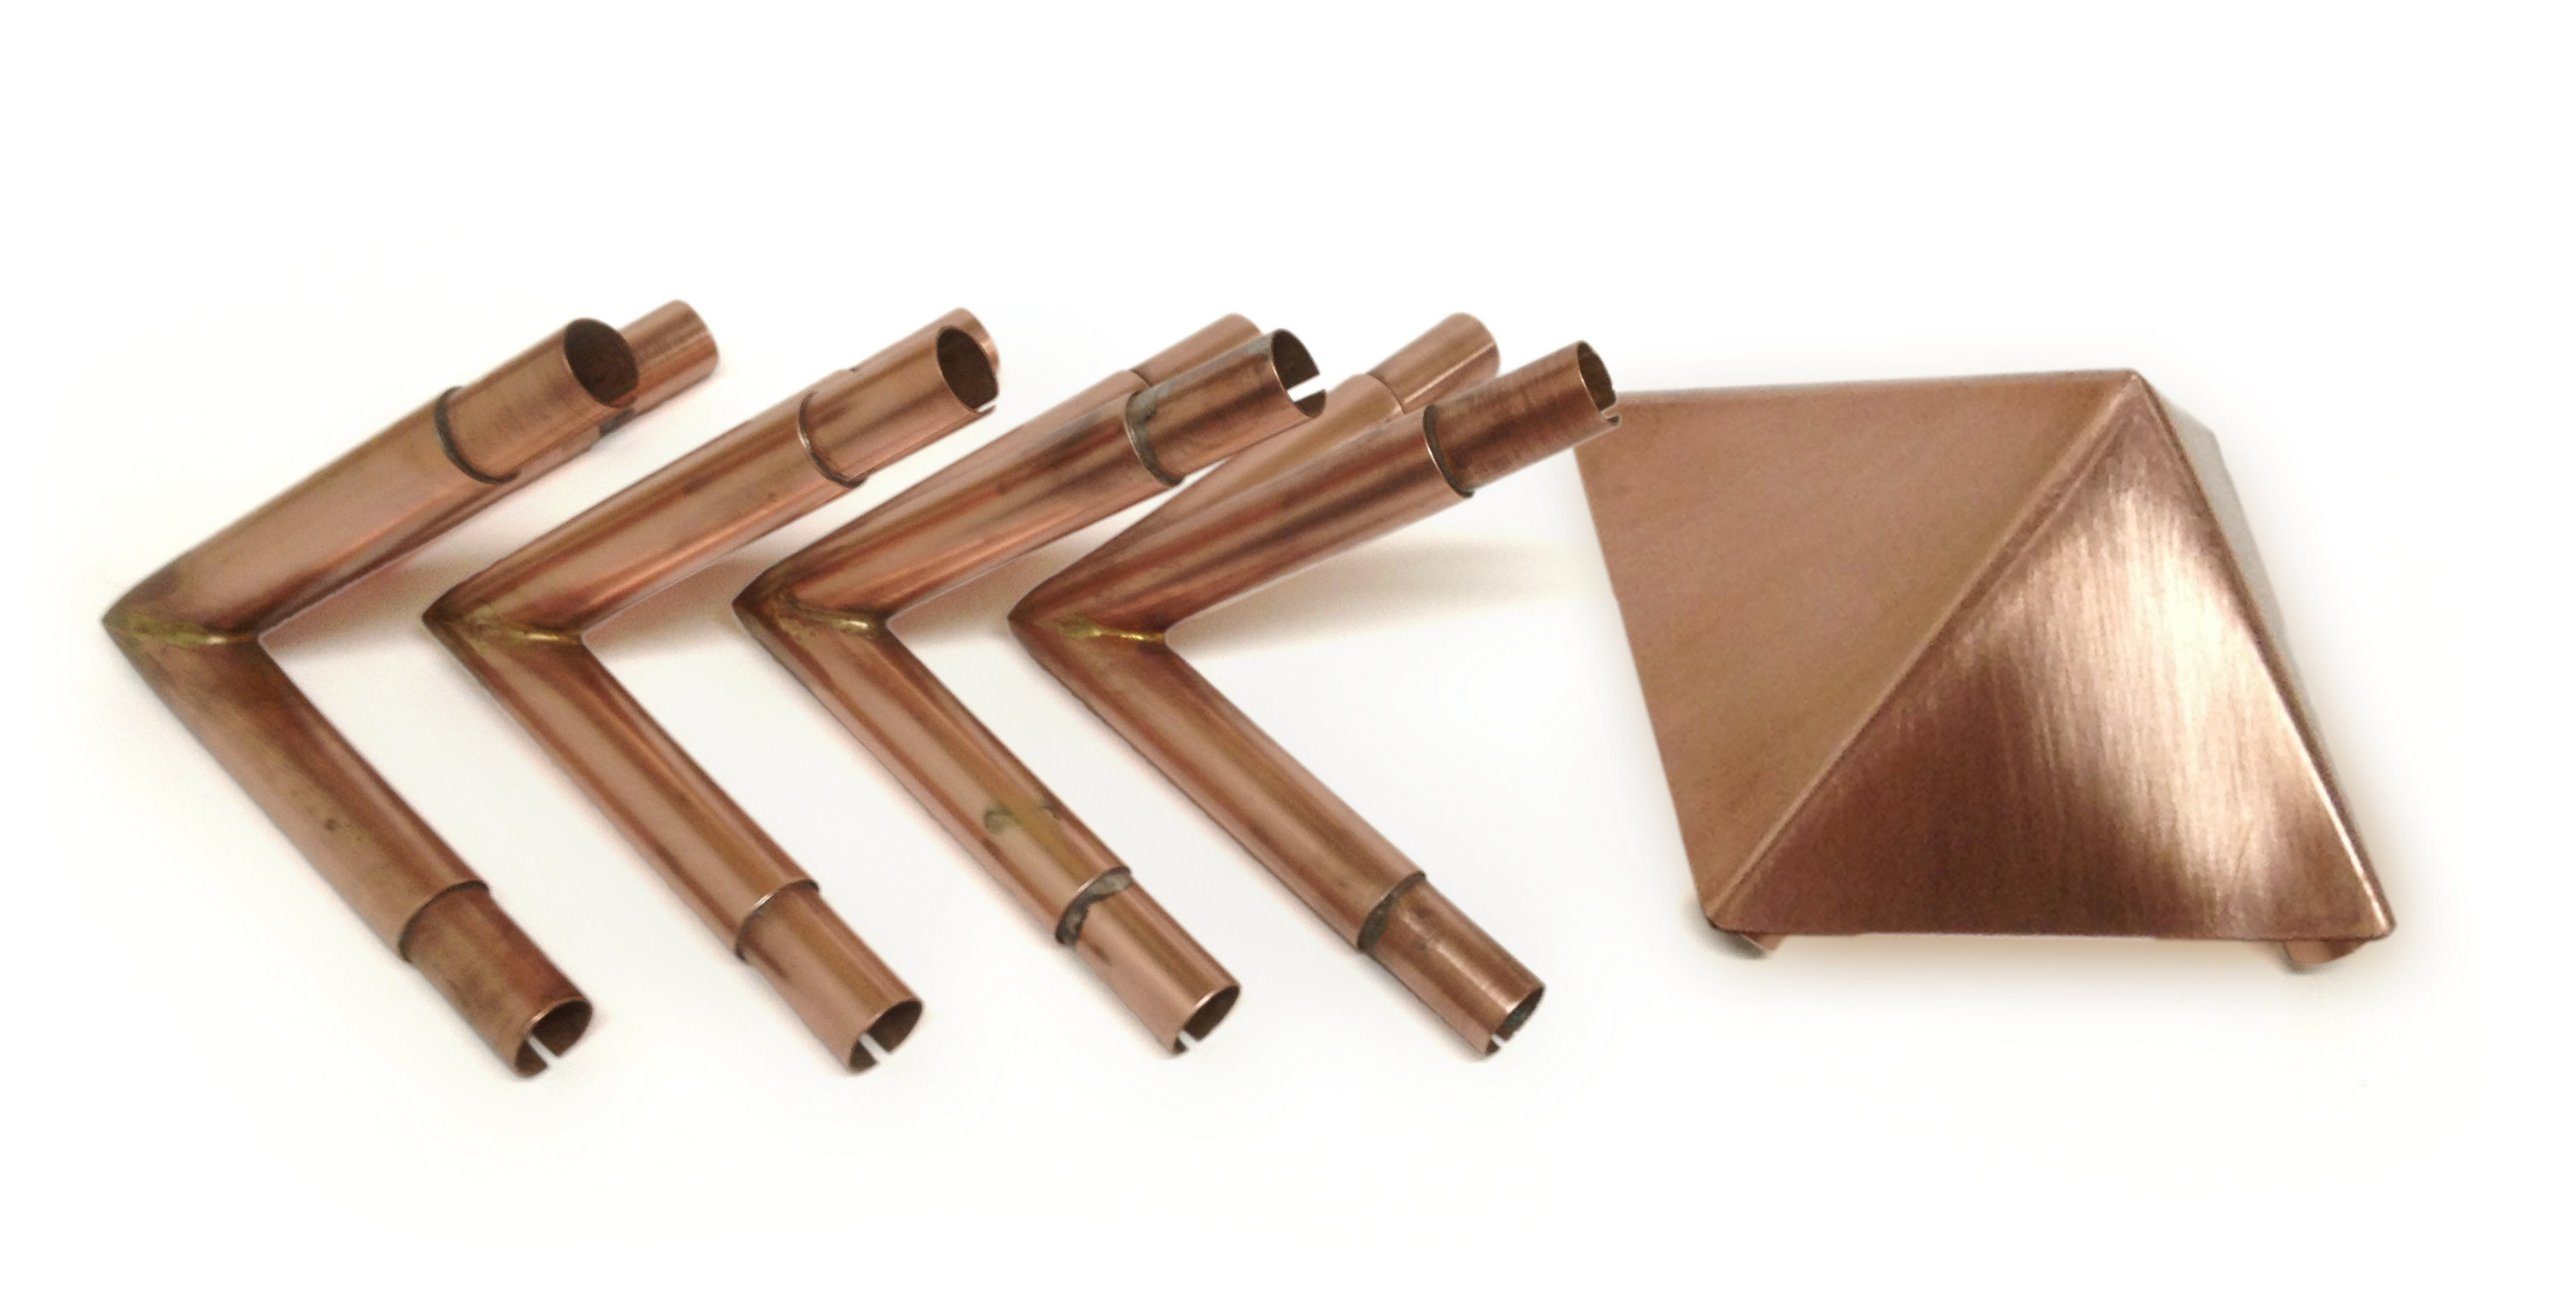 Polished Copper Buddha Maitreya the Christ 51 Degree Meditation Pyramid Connector Kit with 4'' Capstone - Fits 1/2 Inch Copper Poles (Poles Not Provided)